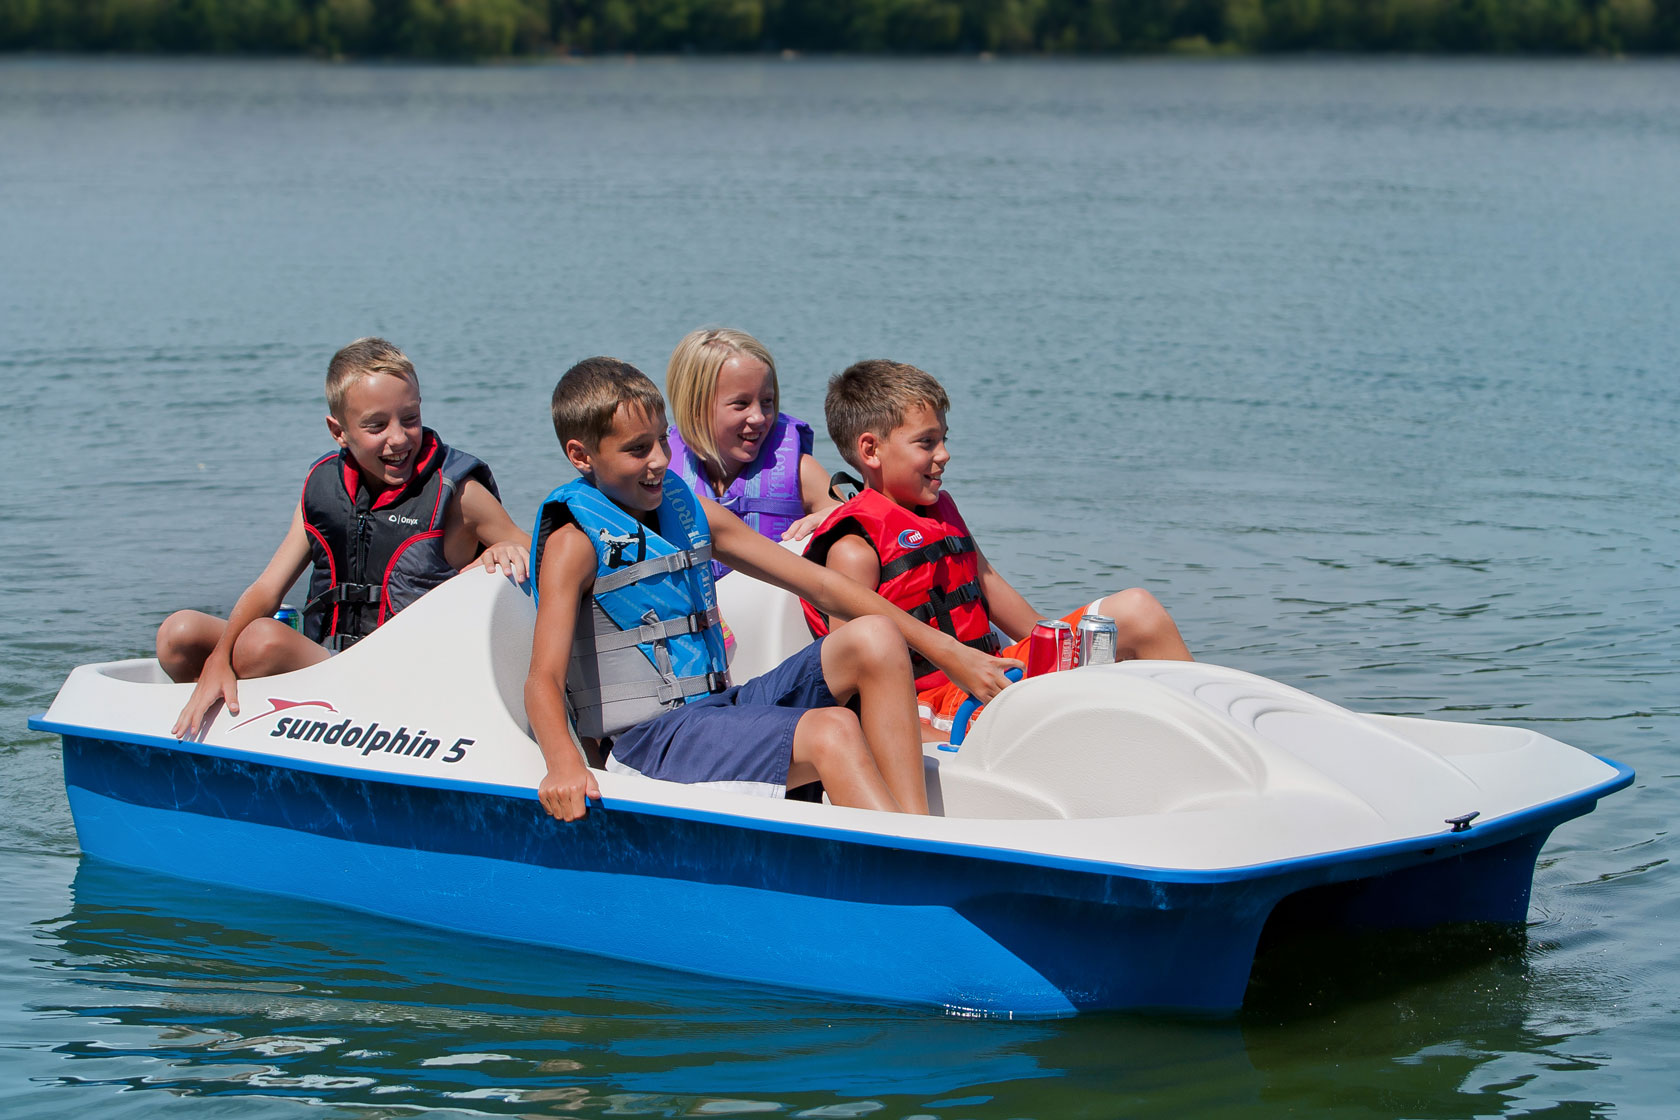 Sun Dolphin 5 - Commercial Recreation Specialists